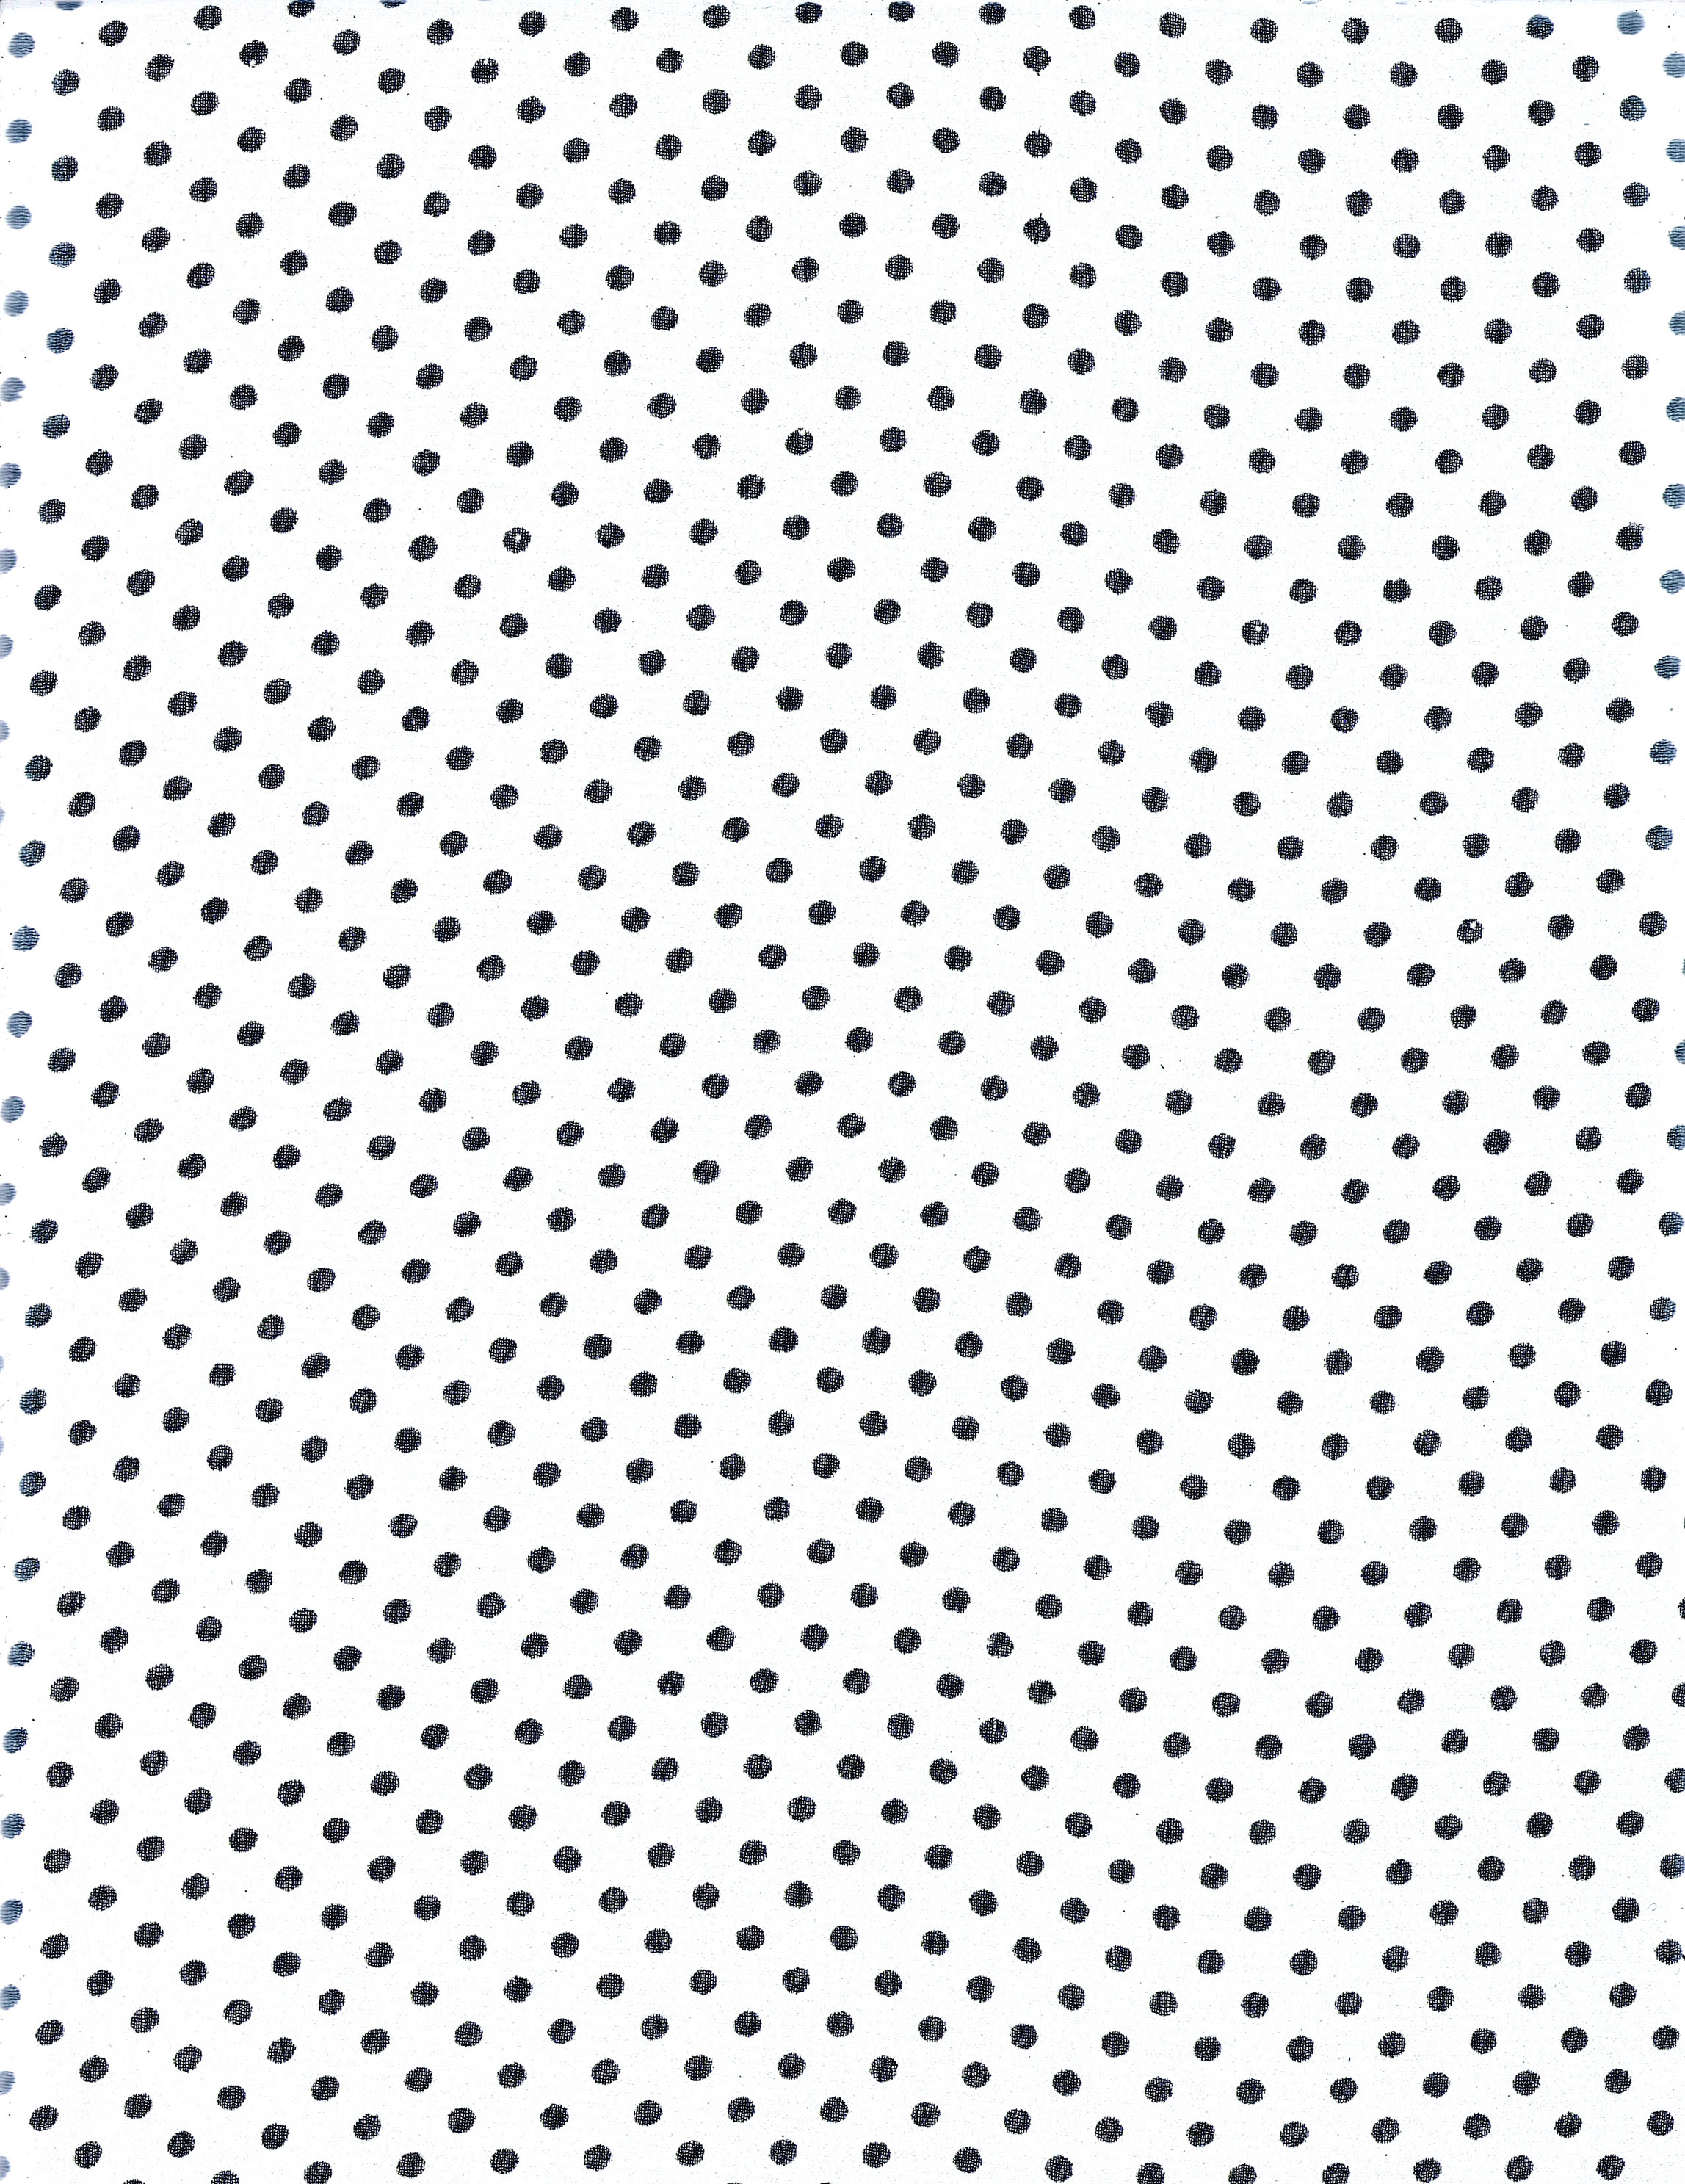 cs black and white polka dots.jpg